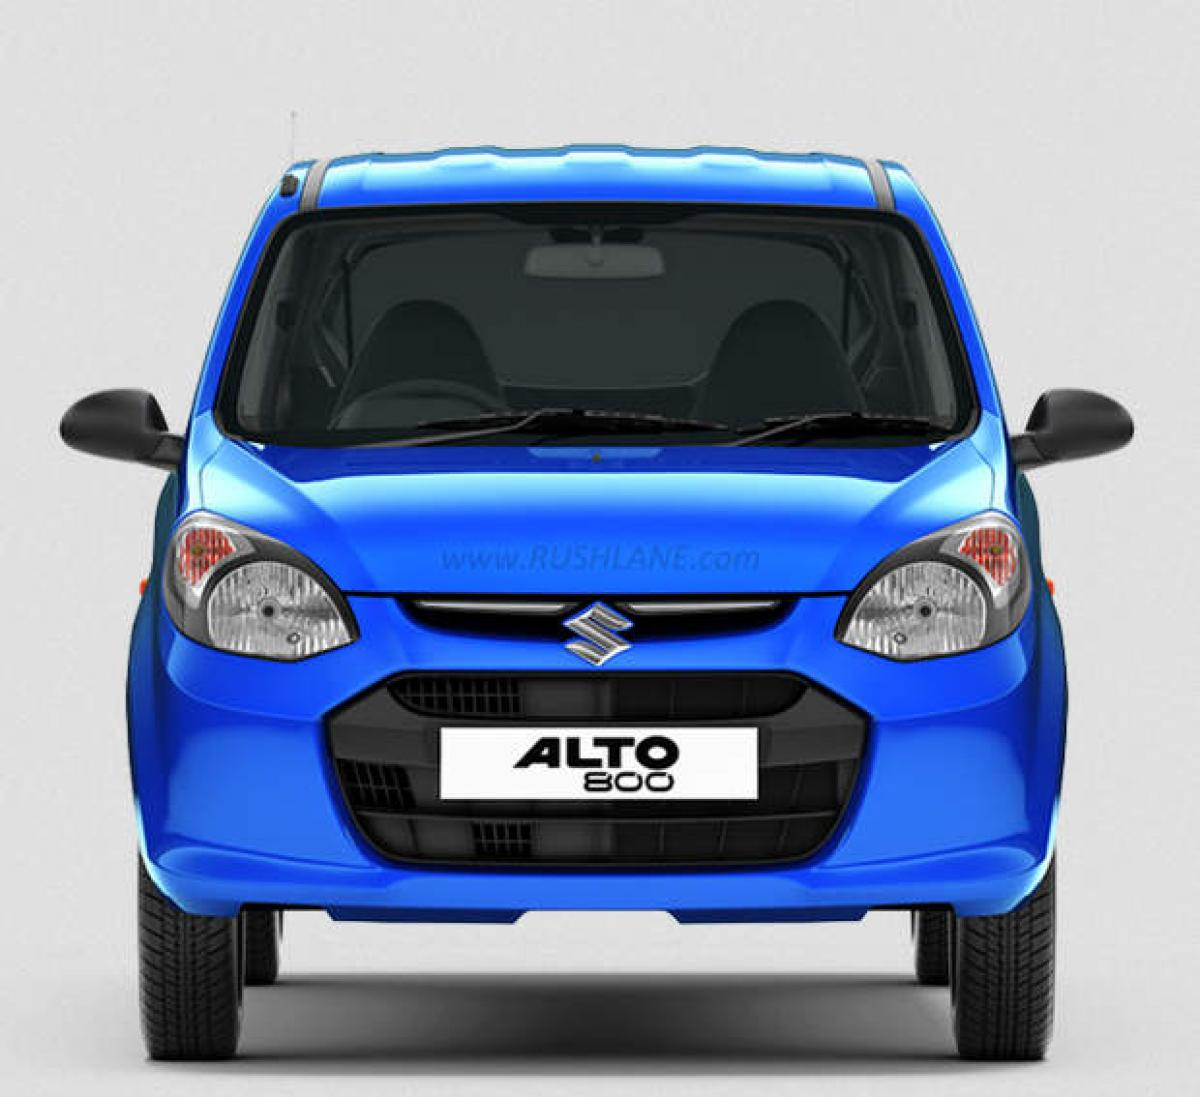 Spotted: 2016 Maruti Alto 800 facelift specifications, price in India